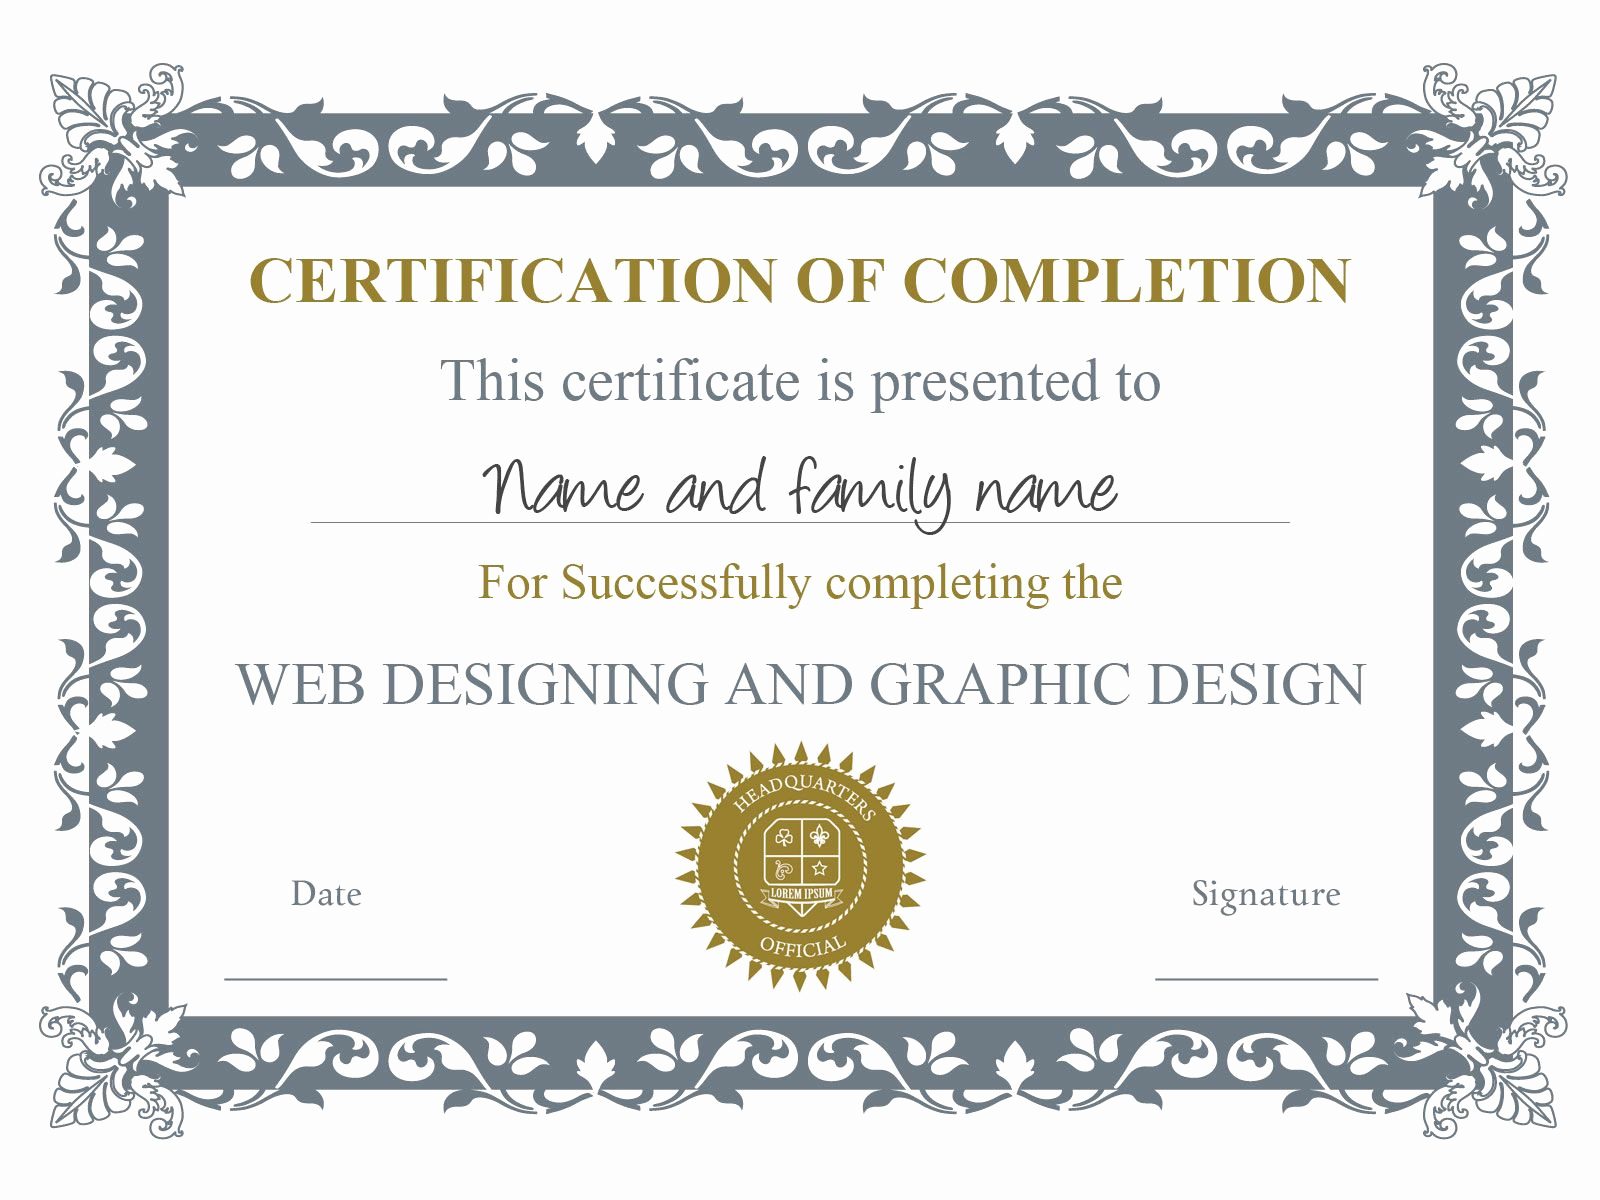 Certificate Of Accomplishment Template Inspirational Pin by Jannine Mullany On Certificate Templates